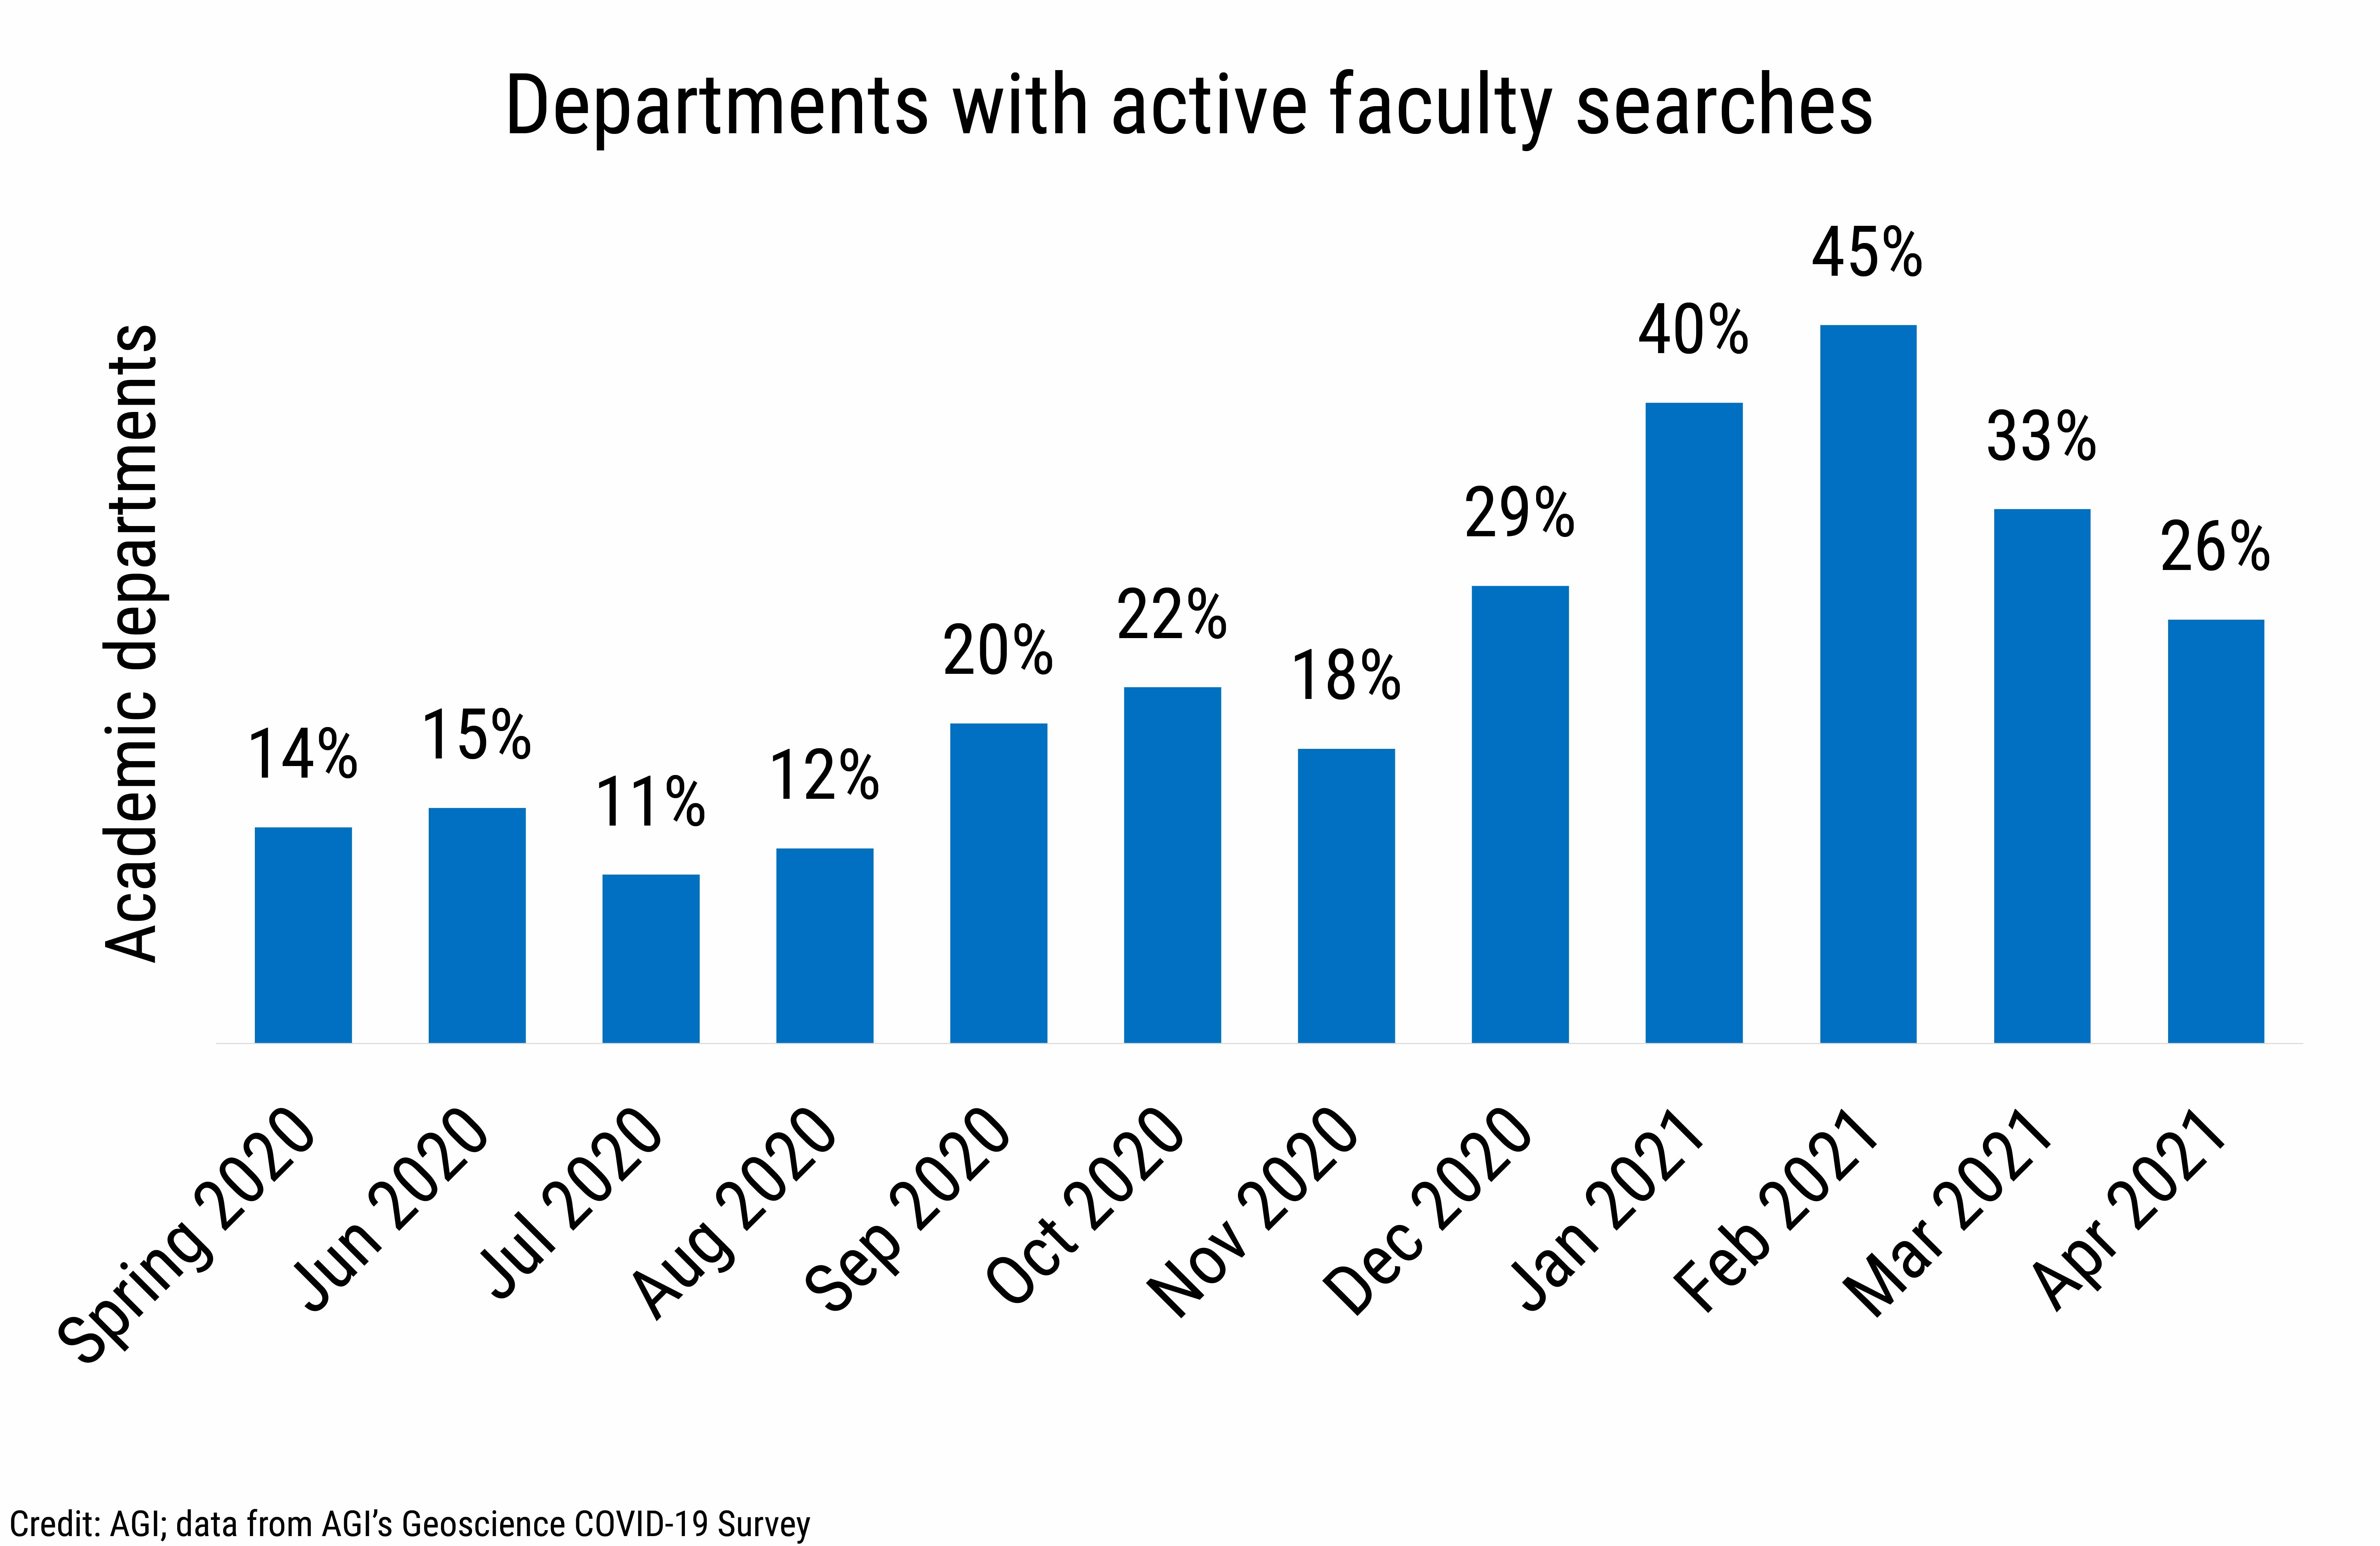 DB_2021-014 chart 07: Departments with active faculty searches (Credit: AGI; data from AGI's Geoscience COVID-19 Survey)